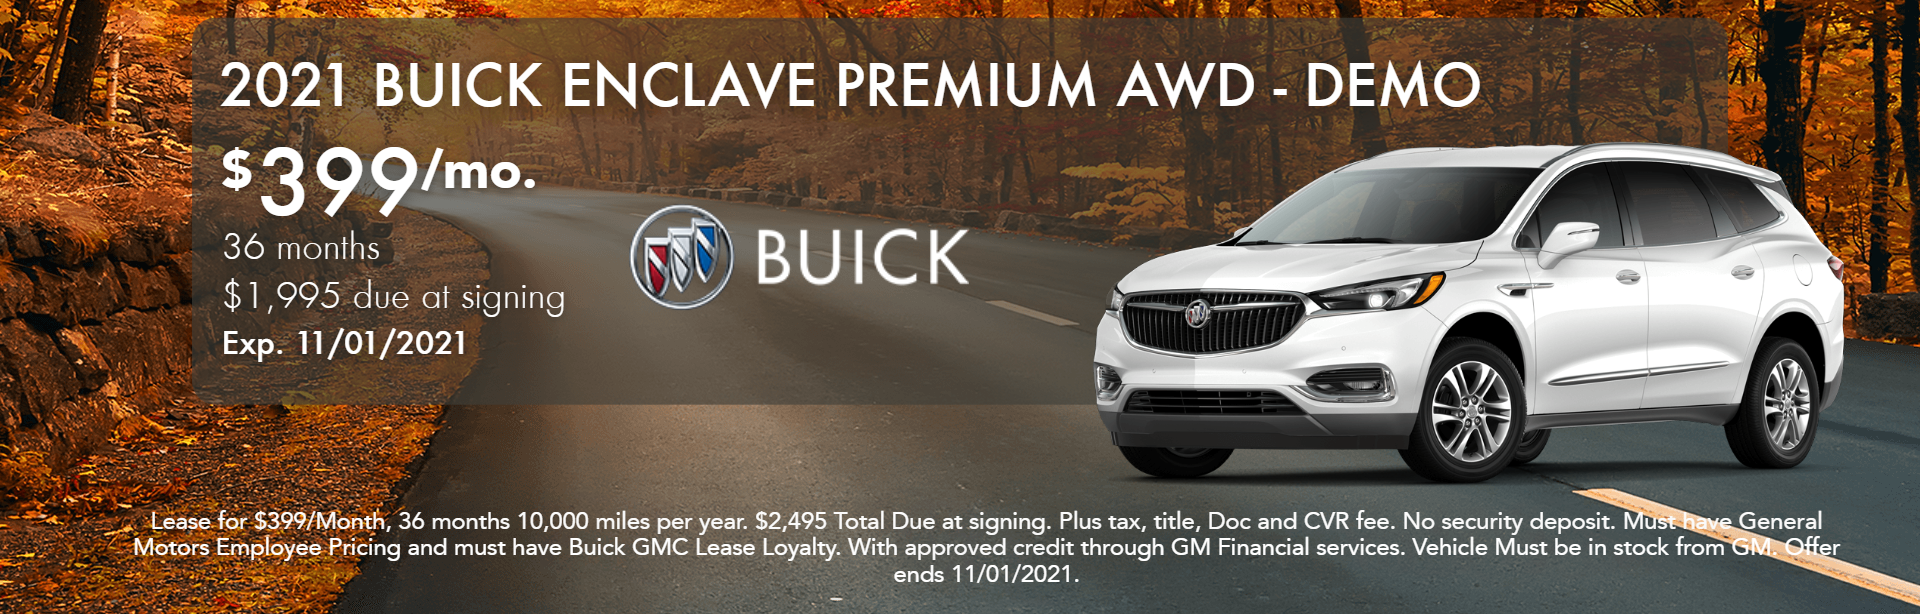 2021_Buick_Enclave_Premium AWD_Mon Oct 04 2021 09_36_05 GMT-0400 (Eastern Daylight Time)